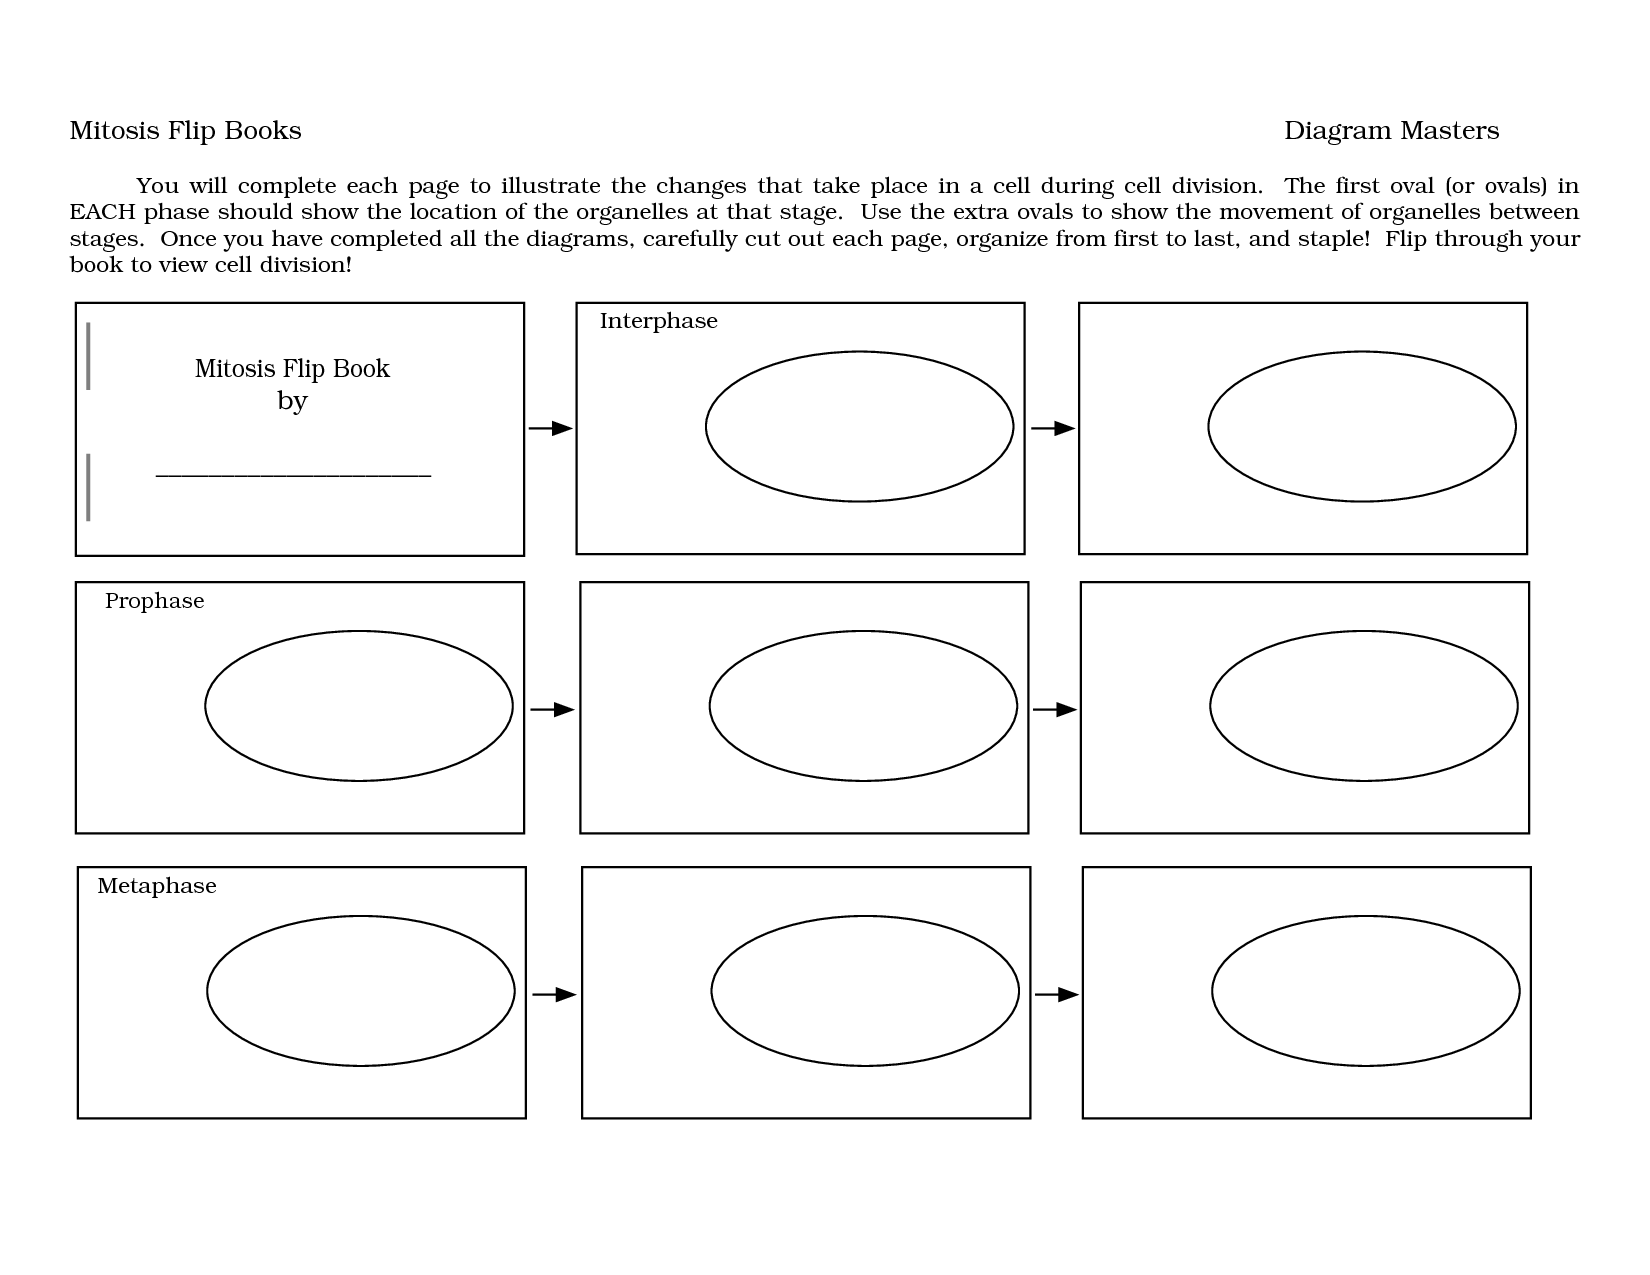 Diagram Mitosis Worksheet Answers